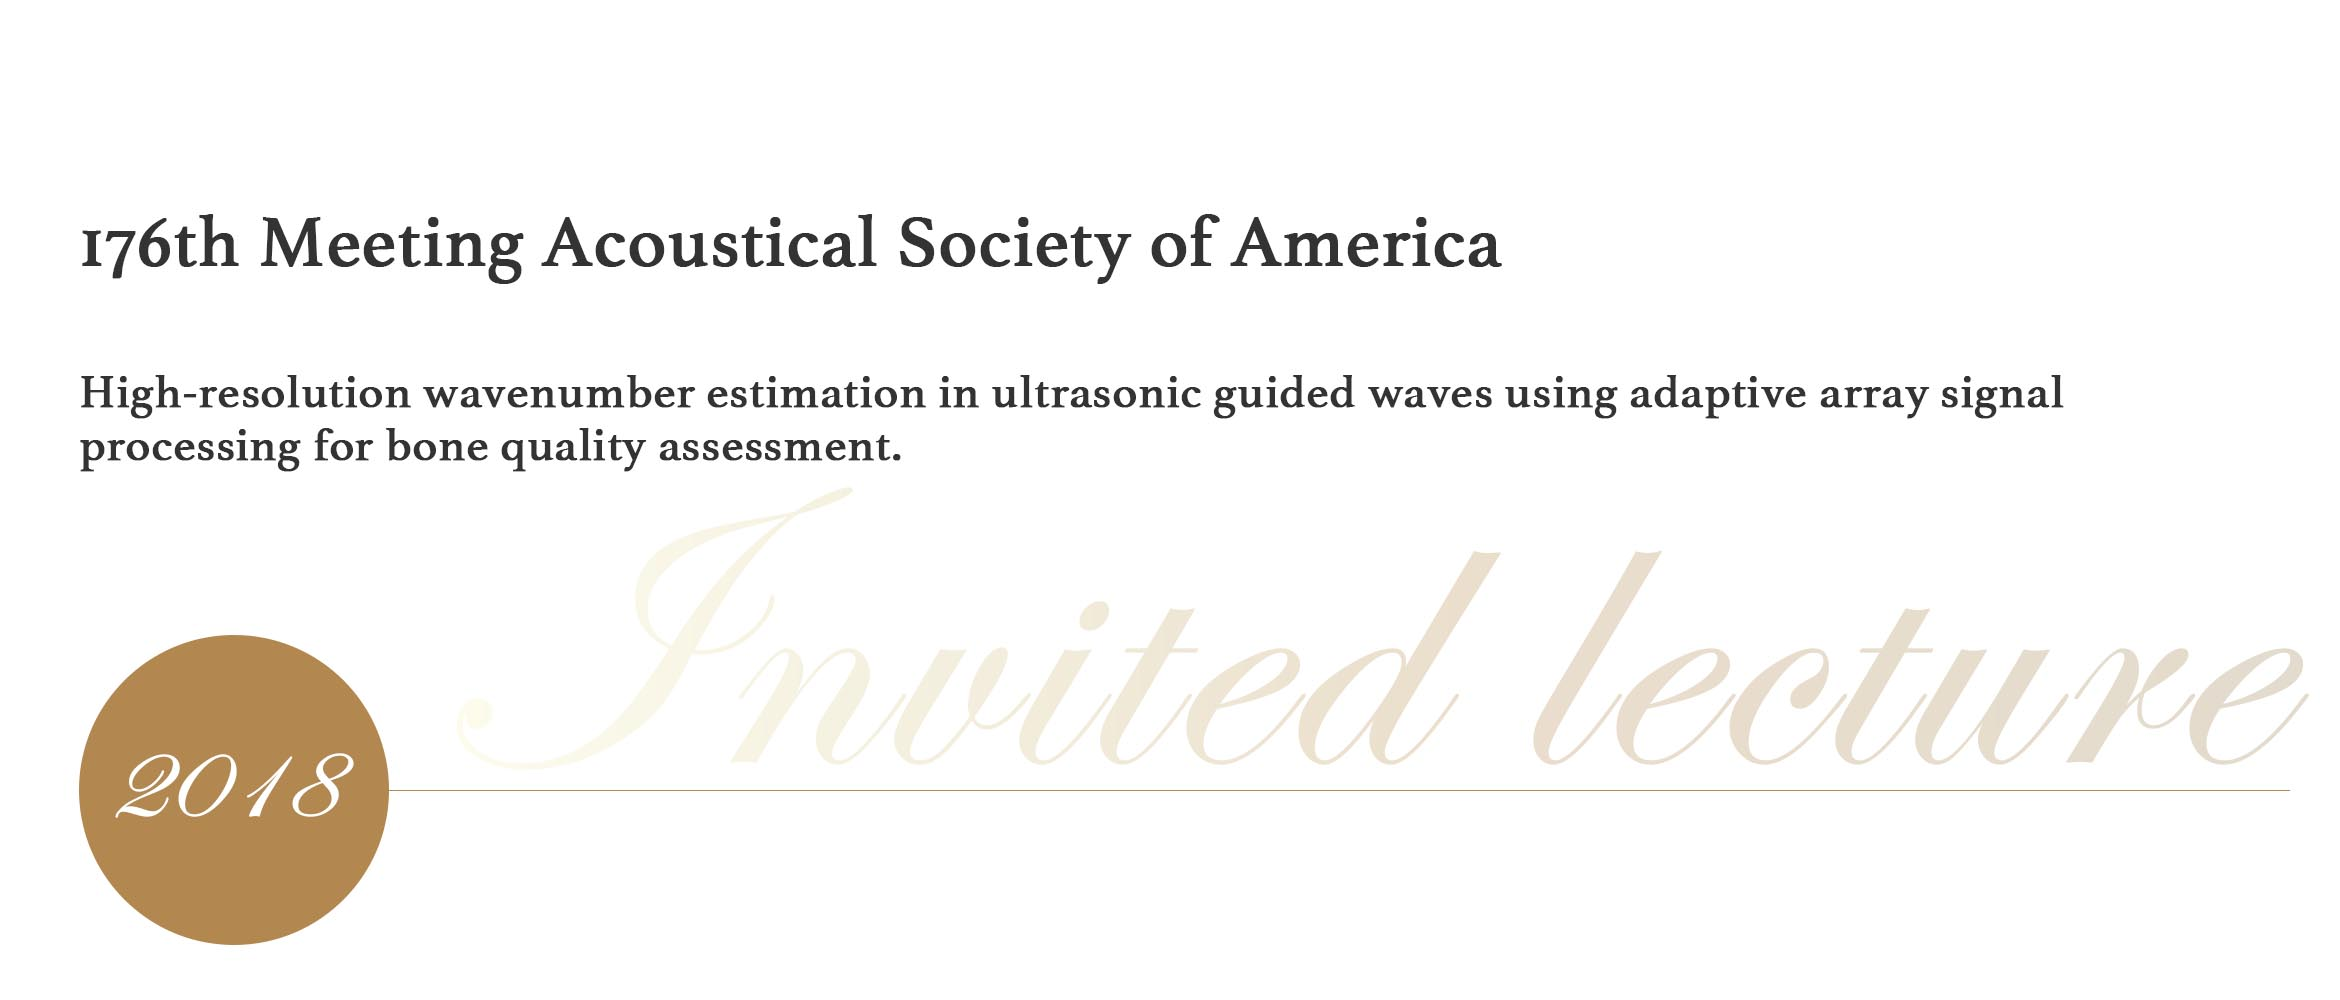 176th Meeting Acoustical Society of America